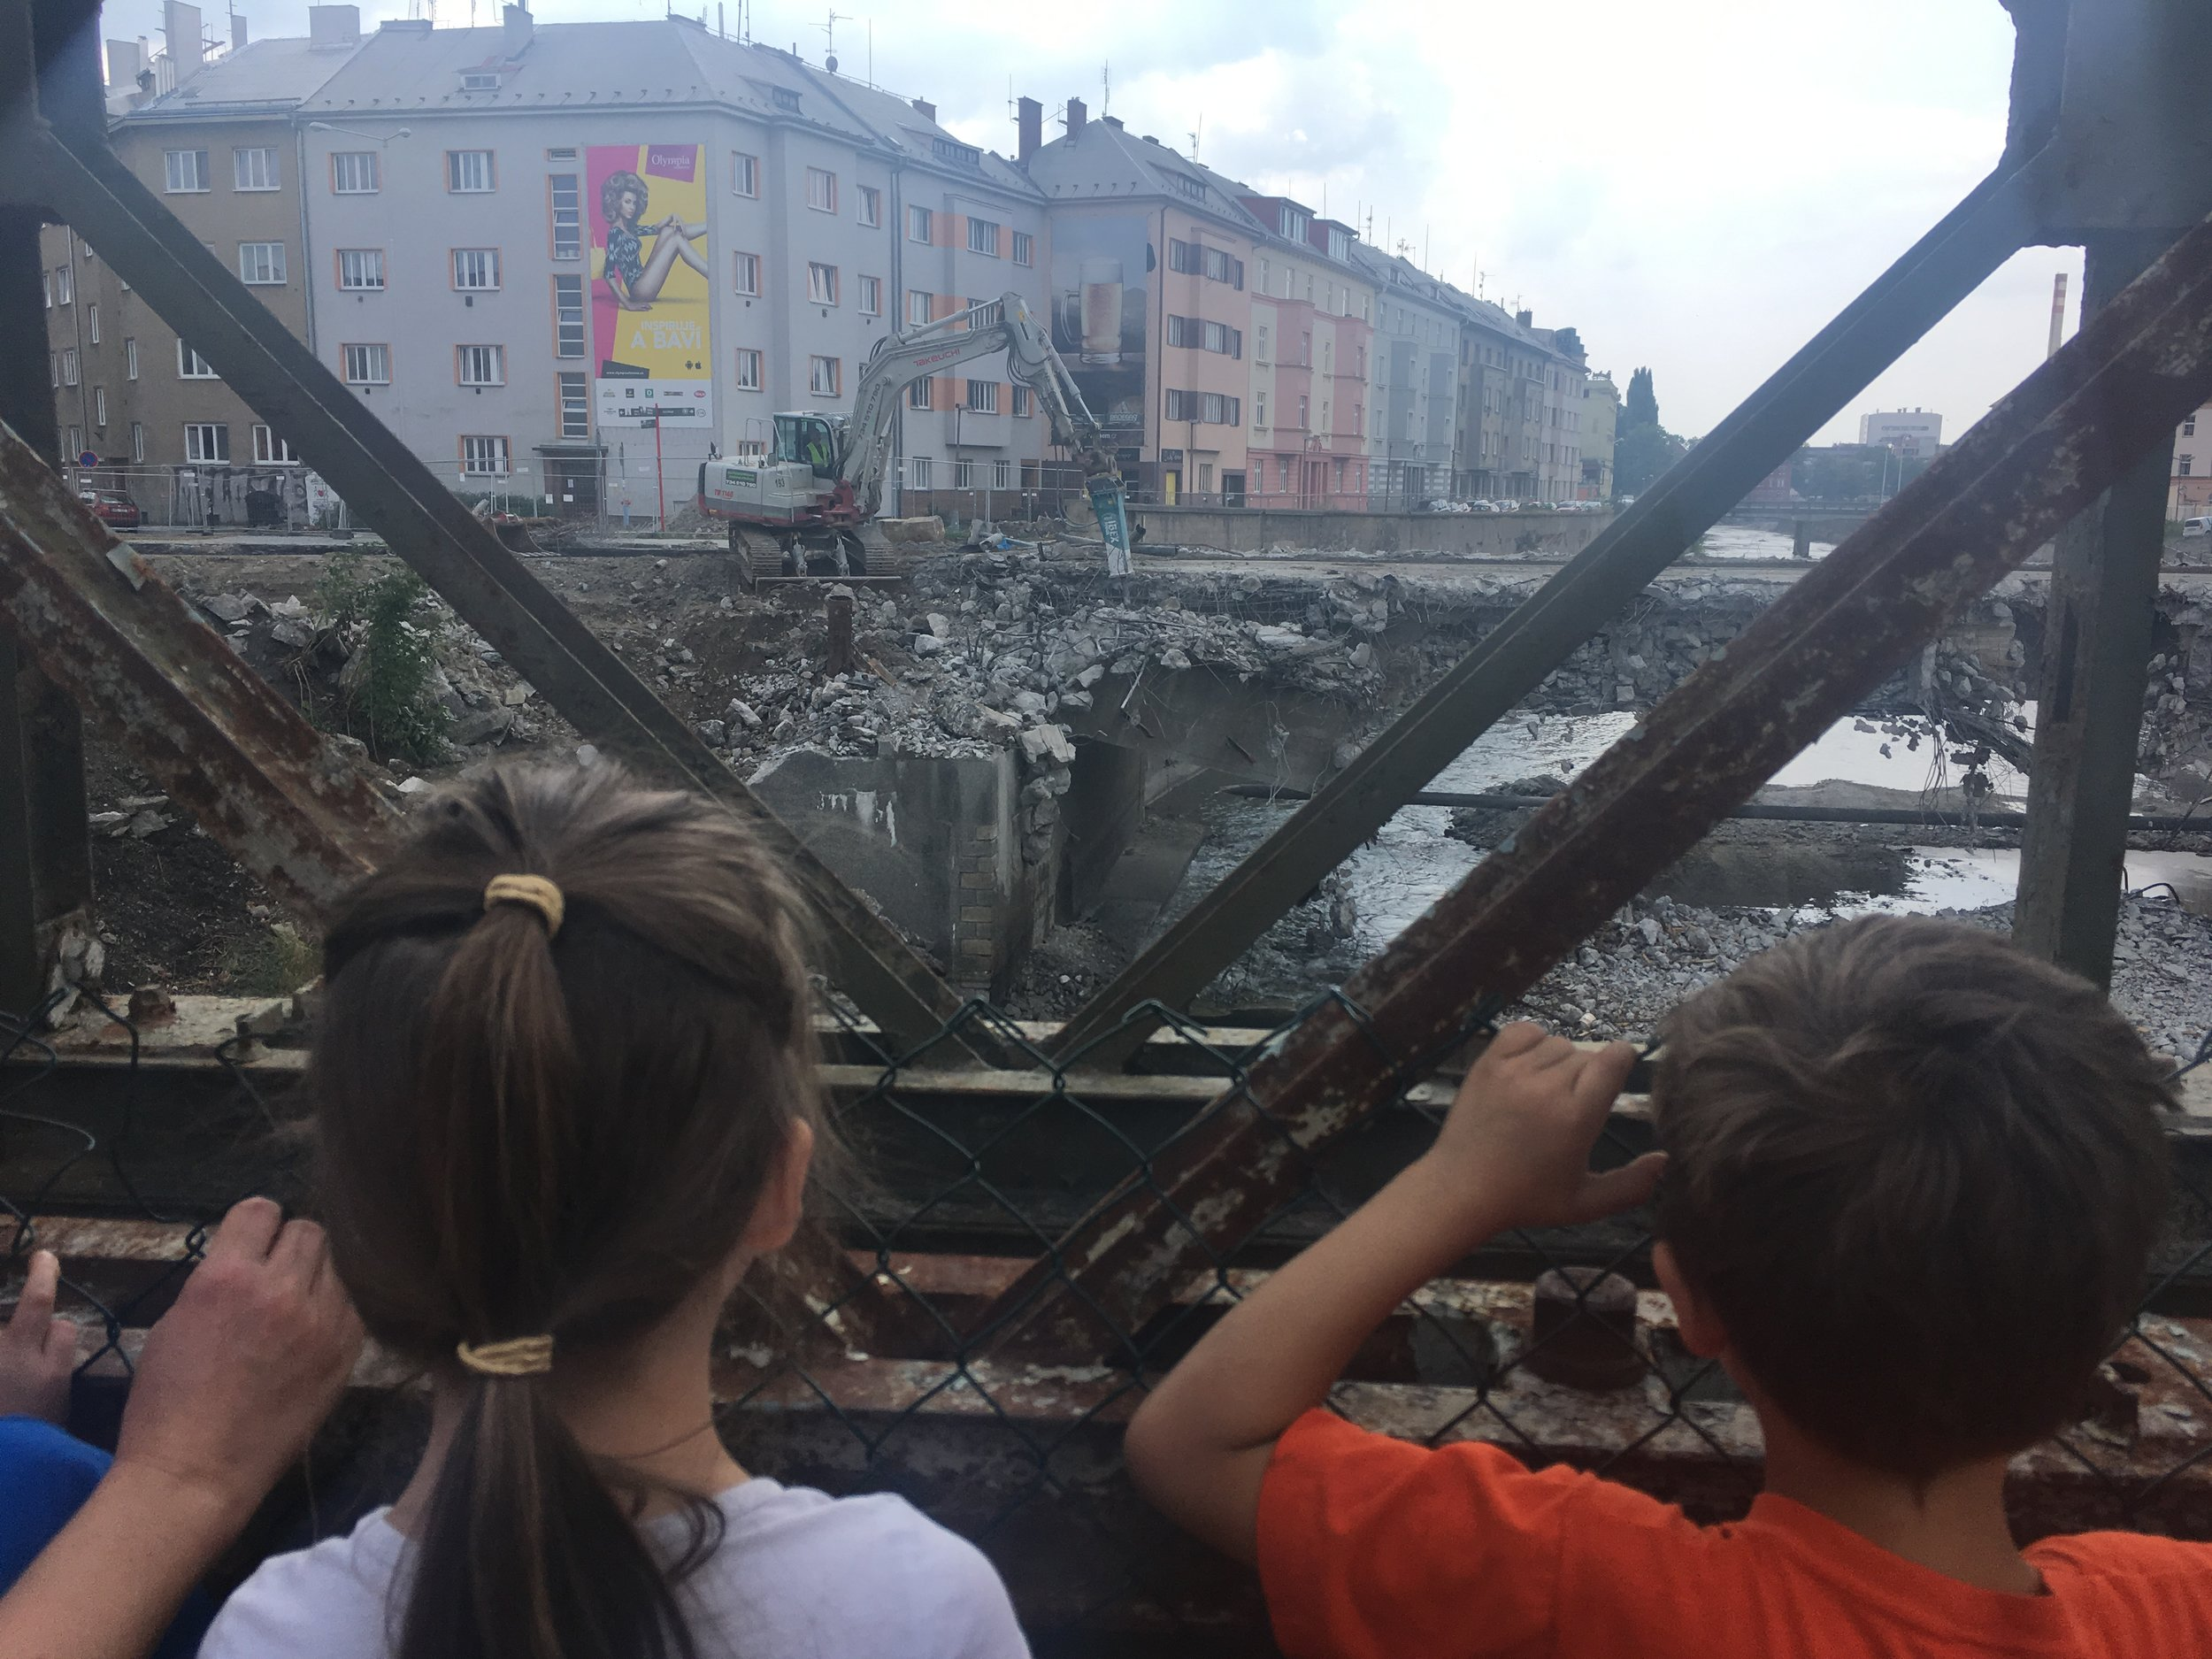 Watching the main bridge that connects our part of town to the city center get demolished. We've been told it won't be back up until sometime in May or June.